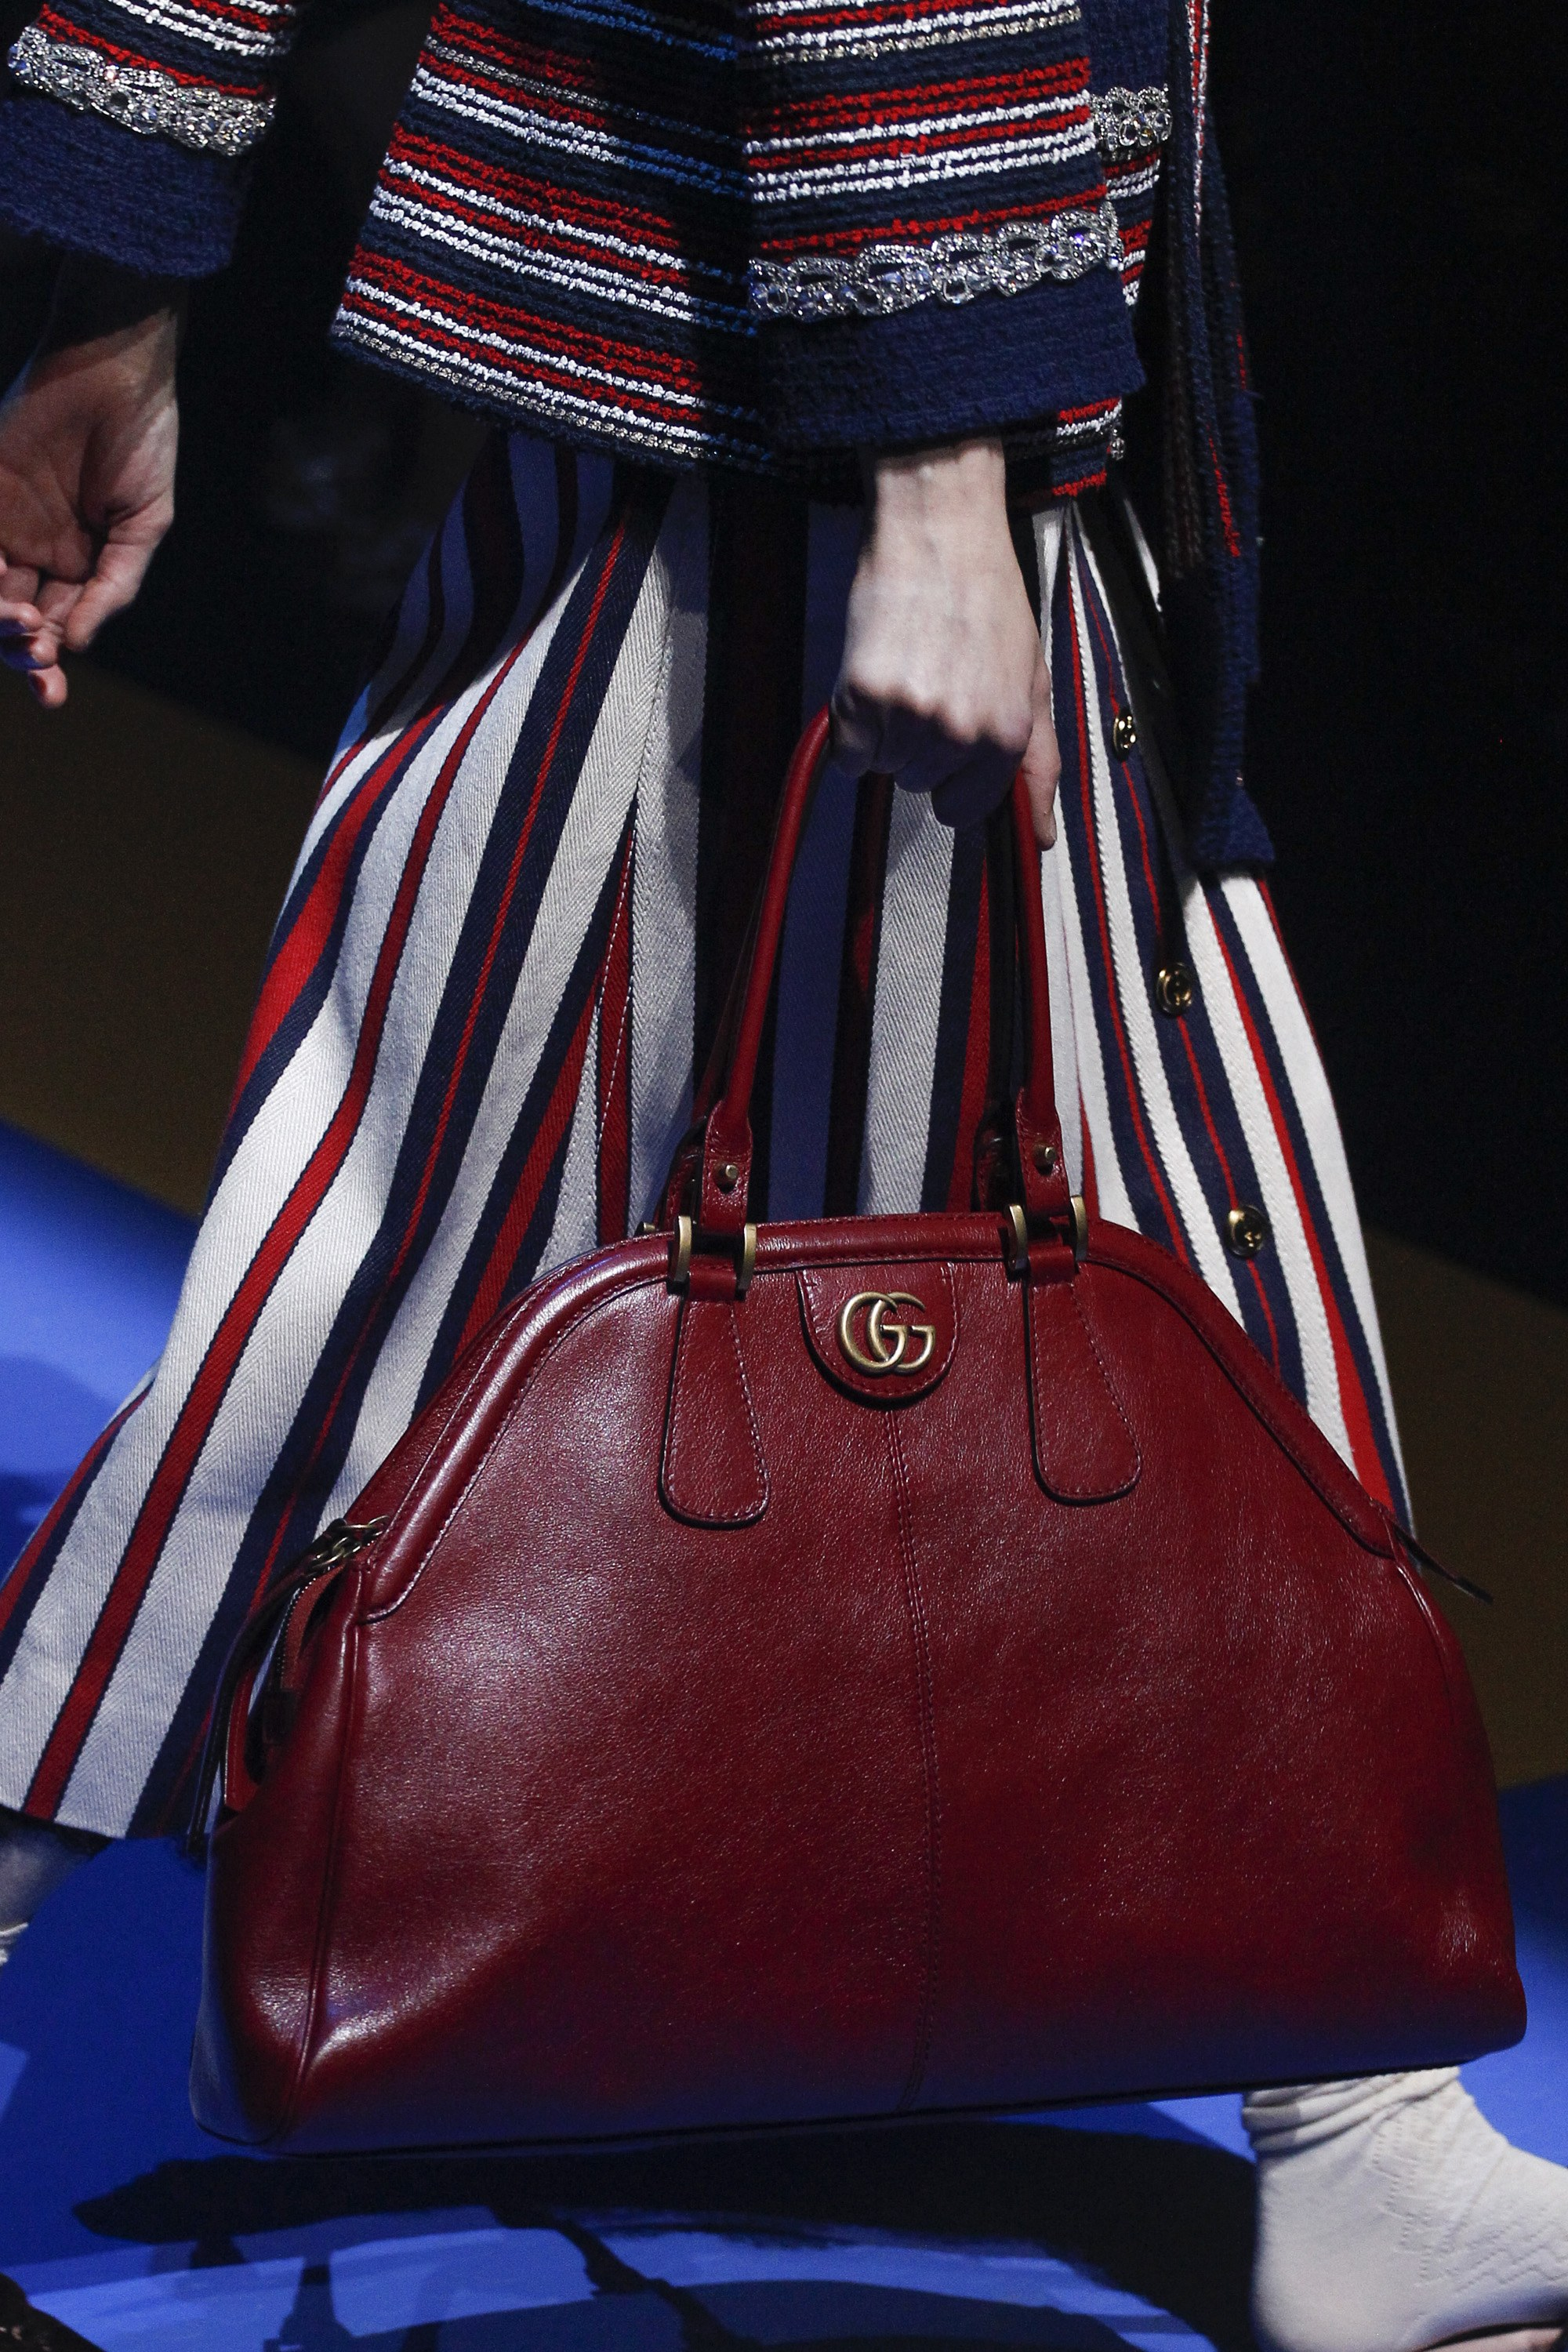 Gucci Spring Summer 2018 Runway Bag Collection Spotted Fashion